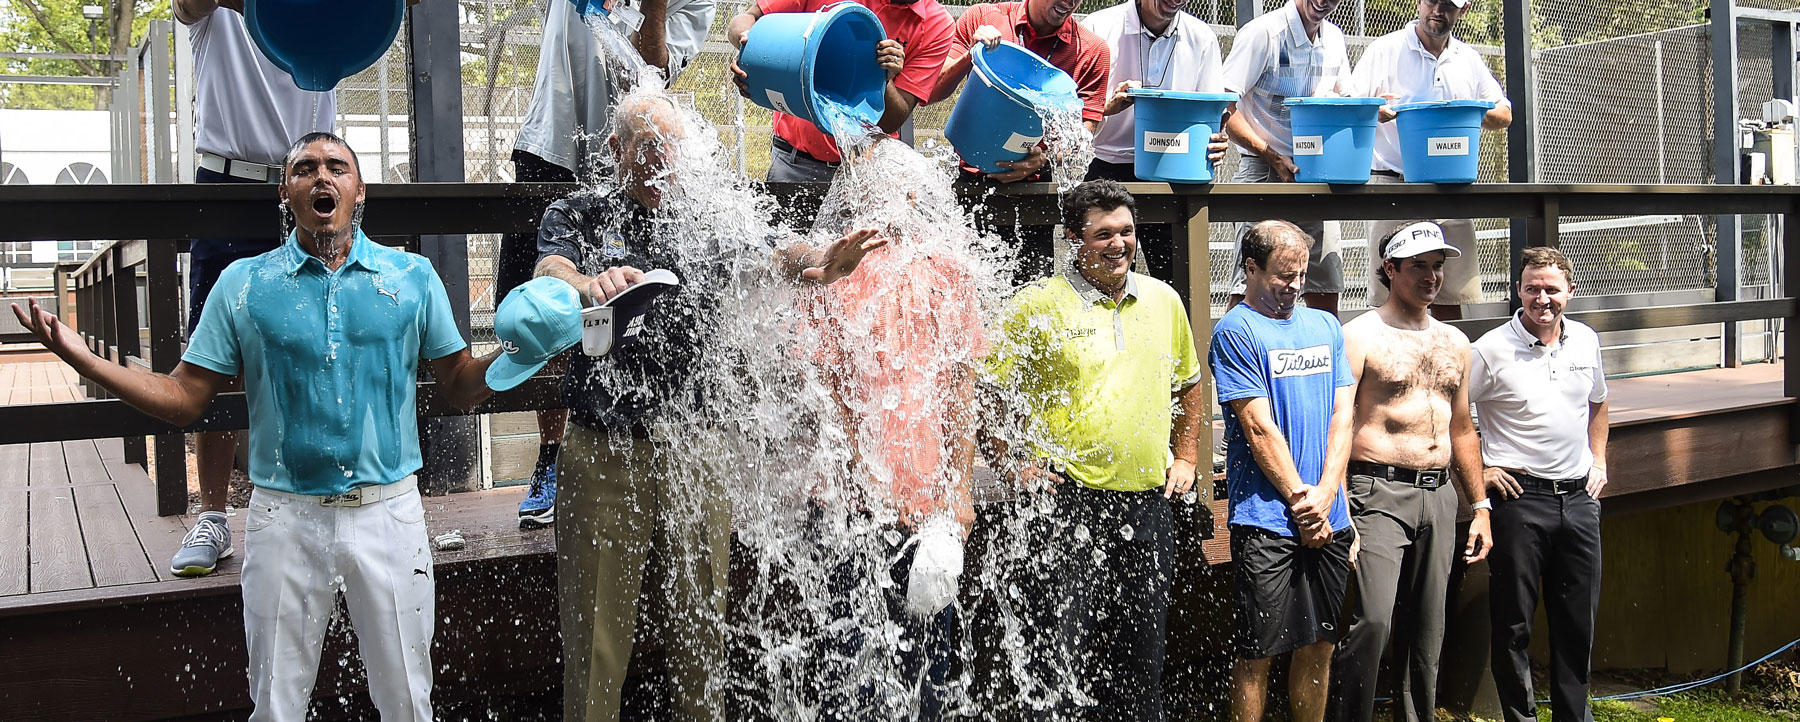 PGA golfers take the Ice Bucket Challenge